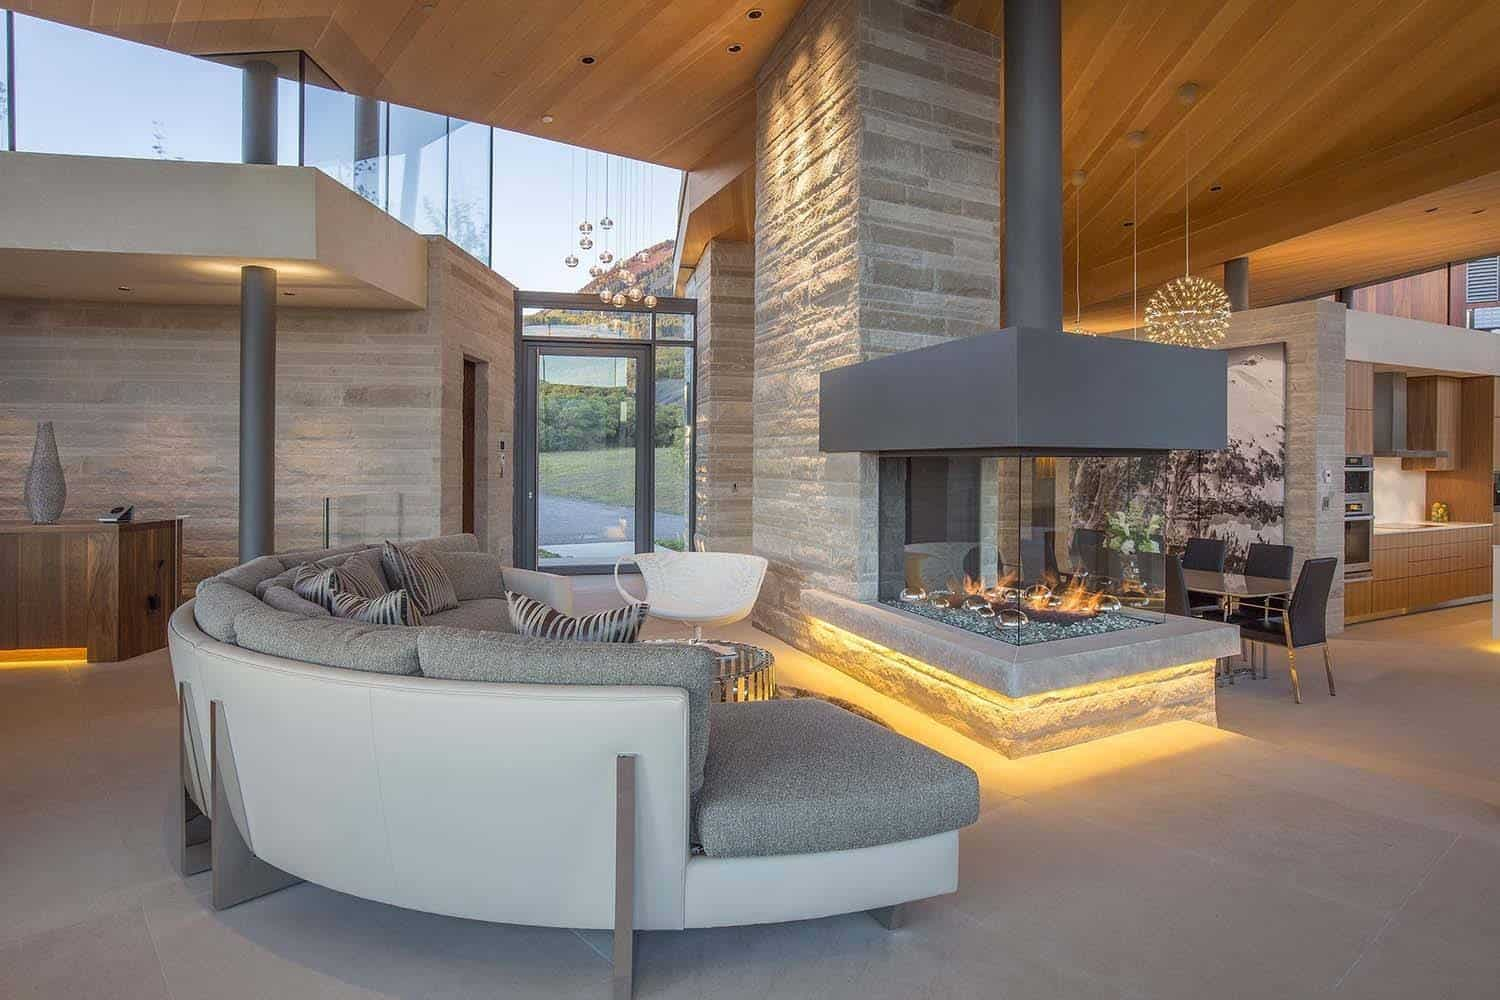 Modern-Residence-Colorado-Poss Architecture-12-1 Kindesign